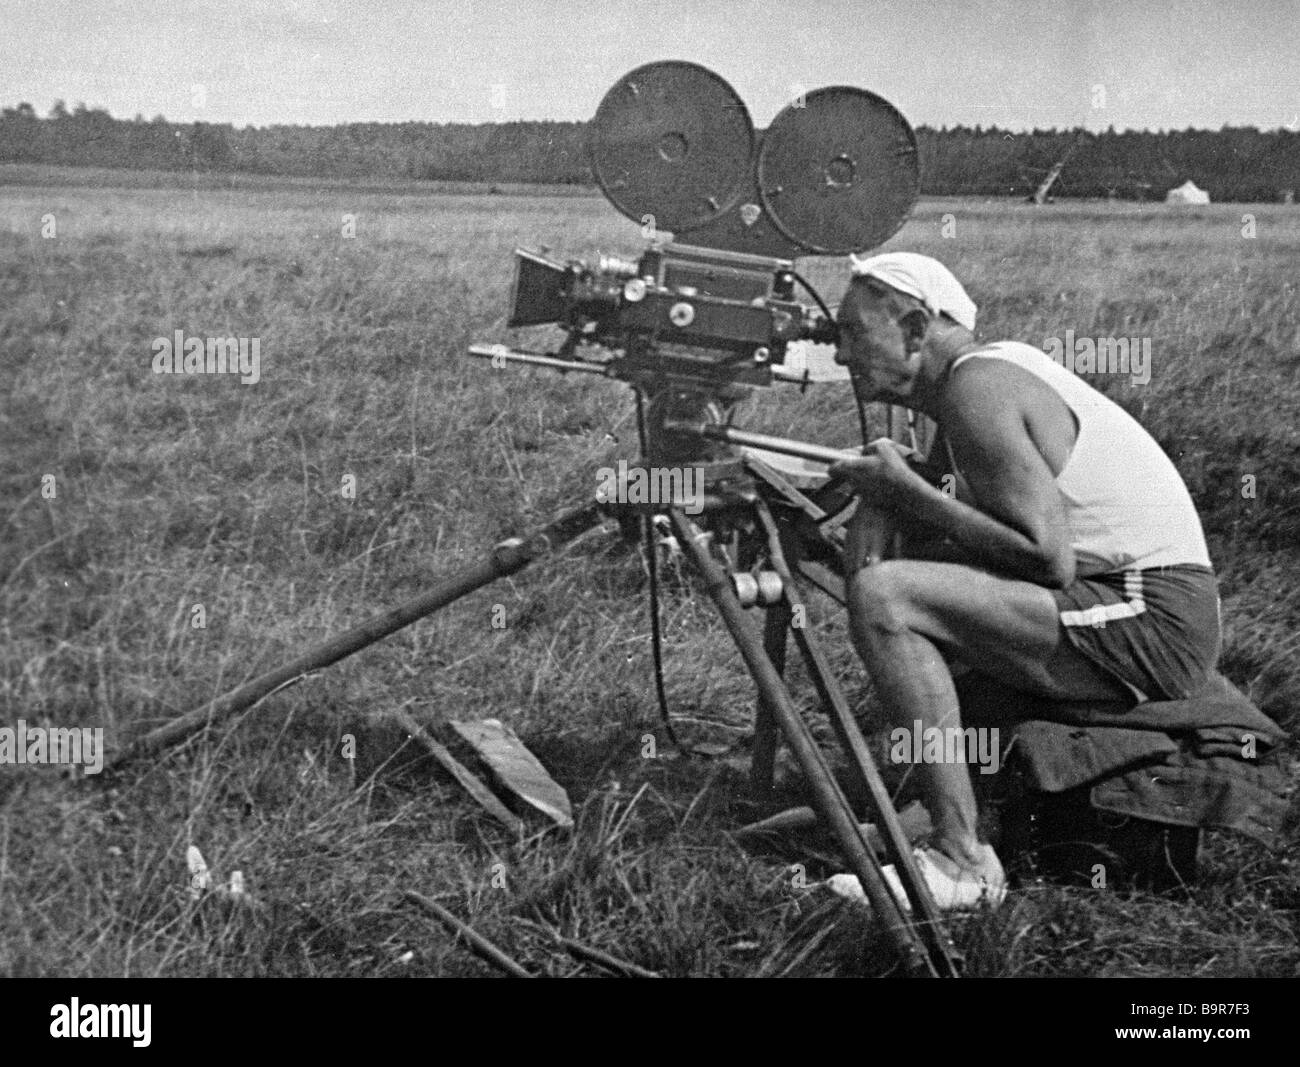 Vsevolod Pudovkin eminent Soviet film director and actor right on the shooting site - Stock Image